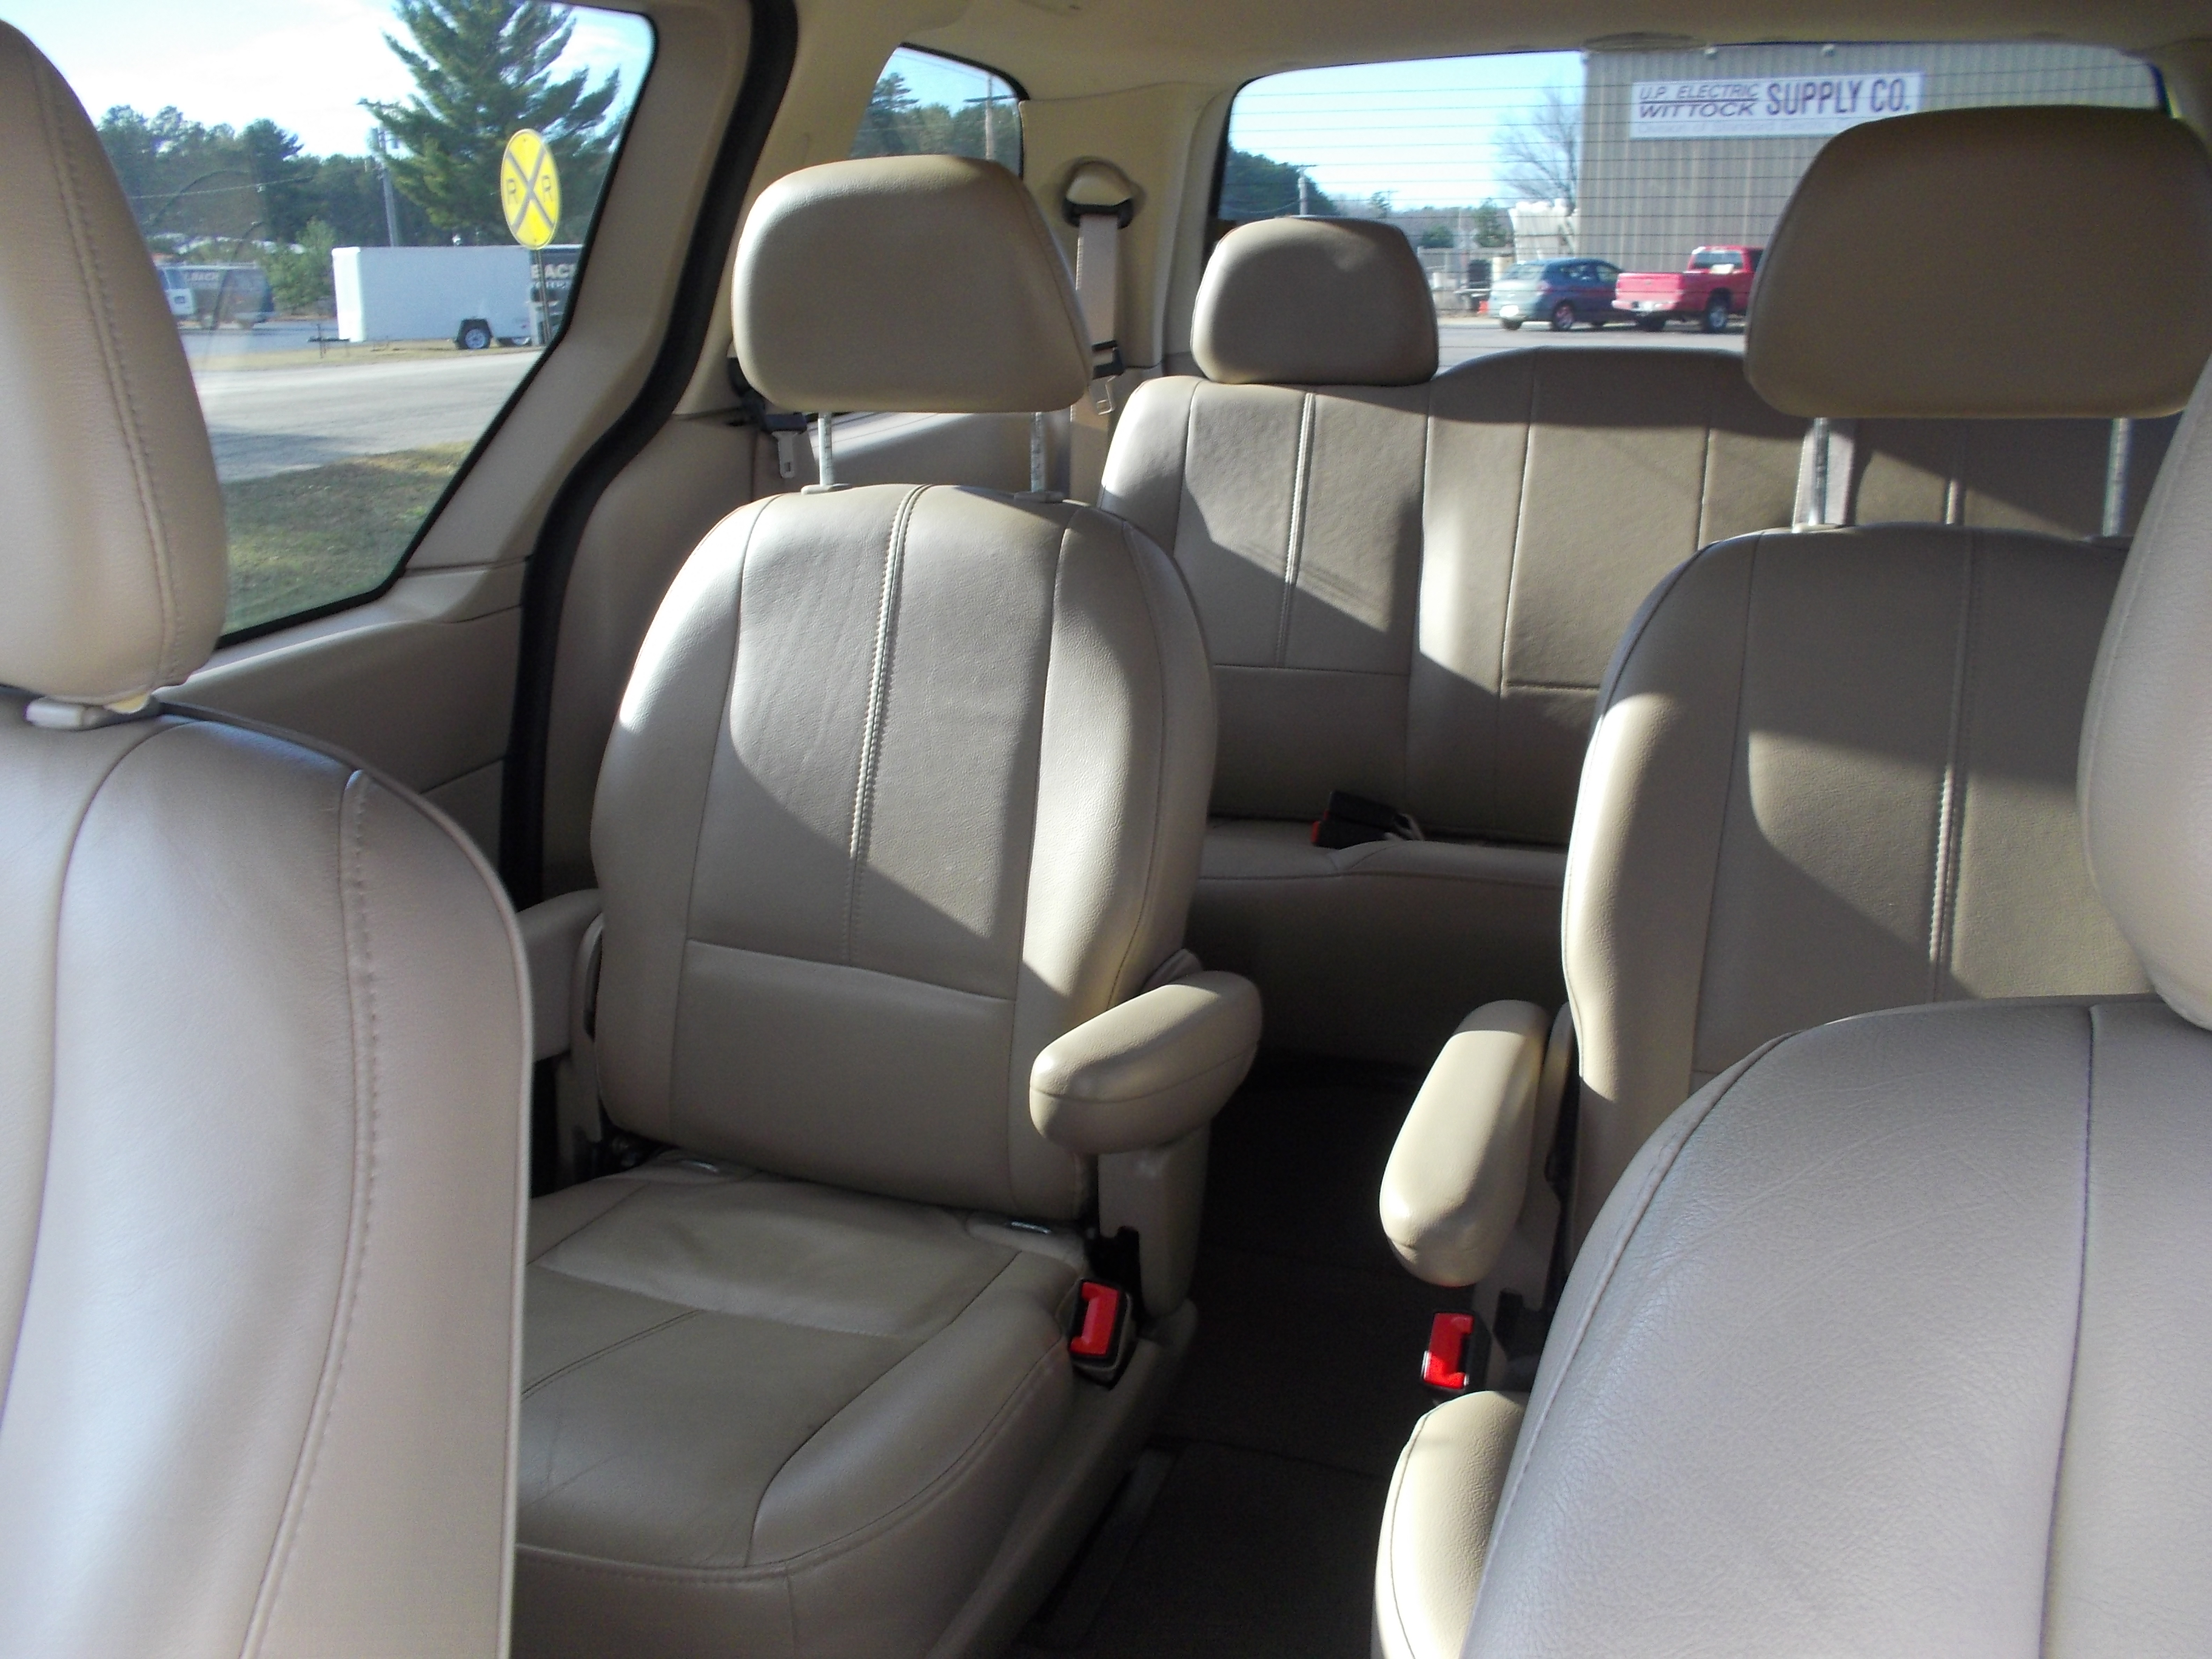 ford windstar images #9